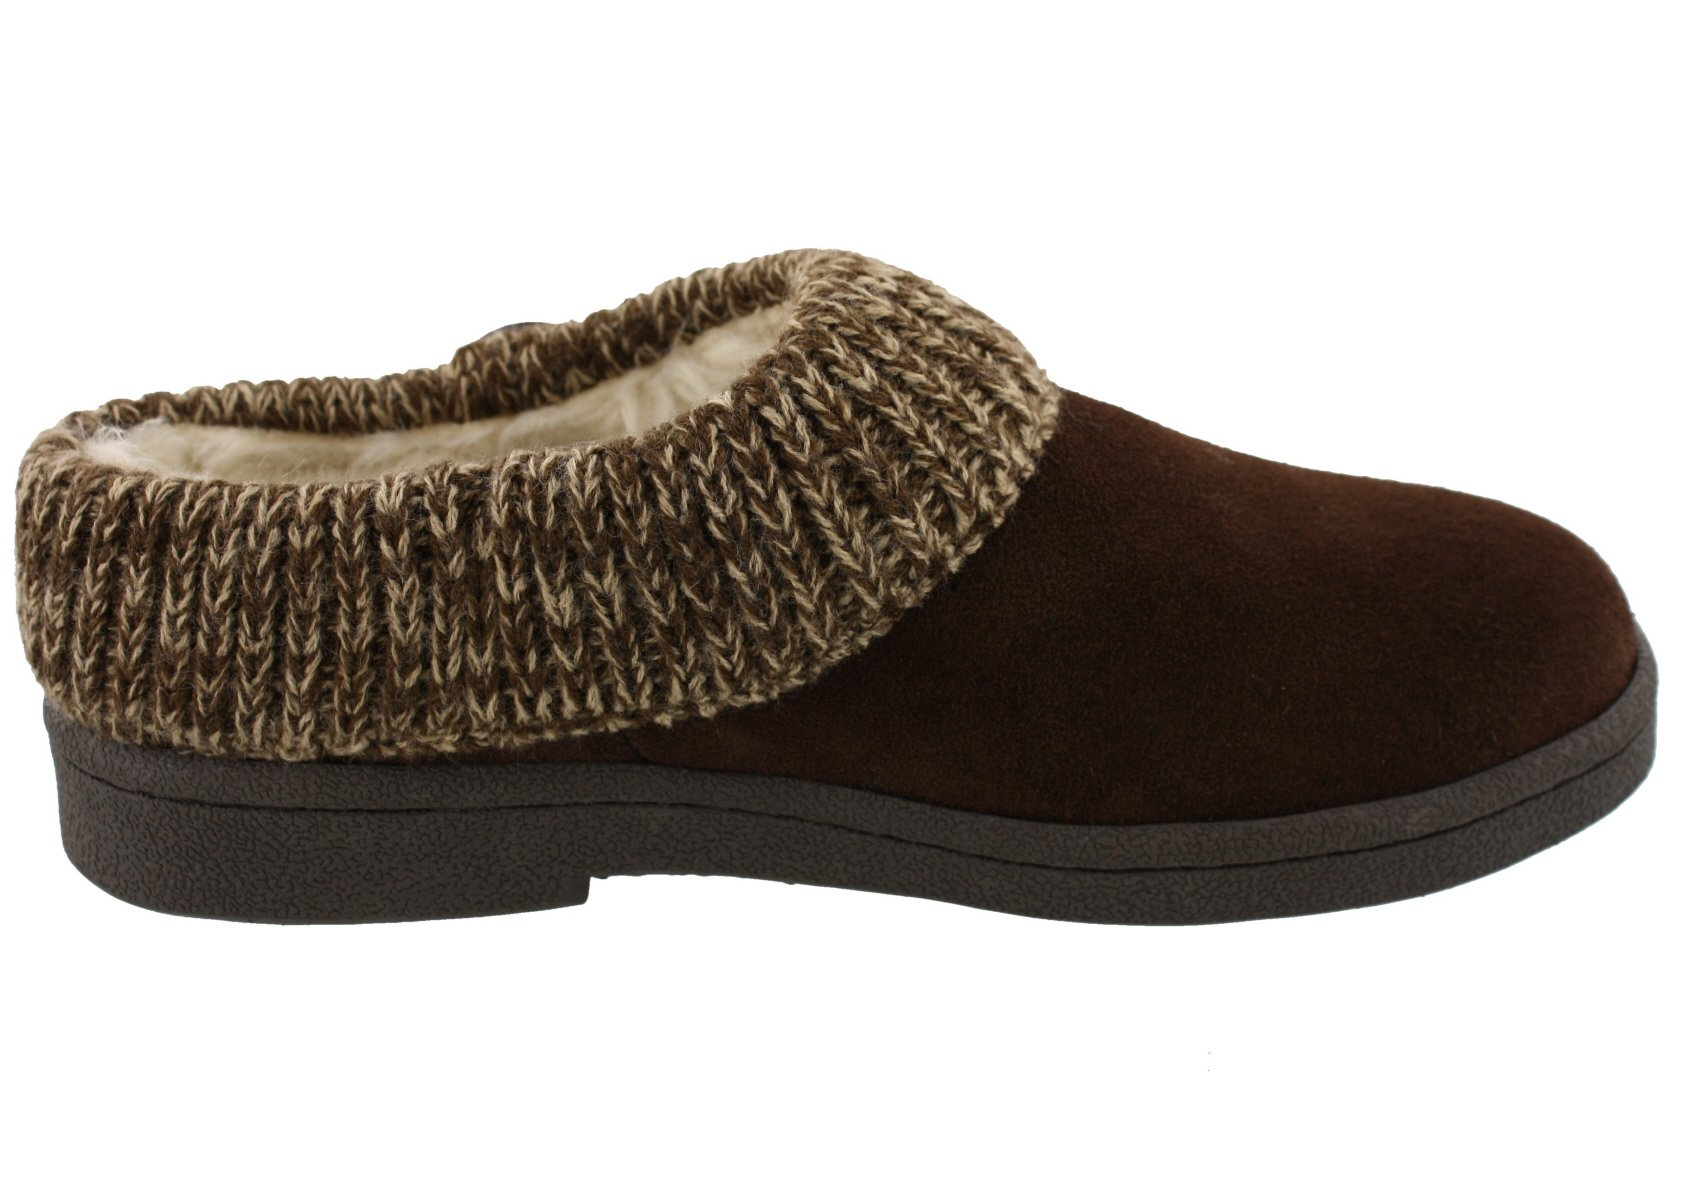 CLARKS Angelina Women's Knitted Collar Clog Slipper